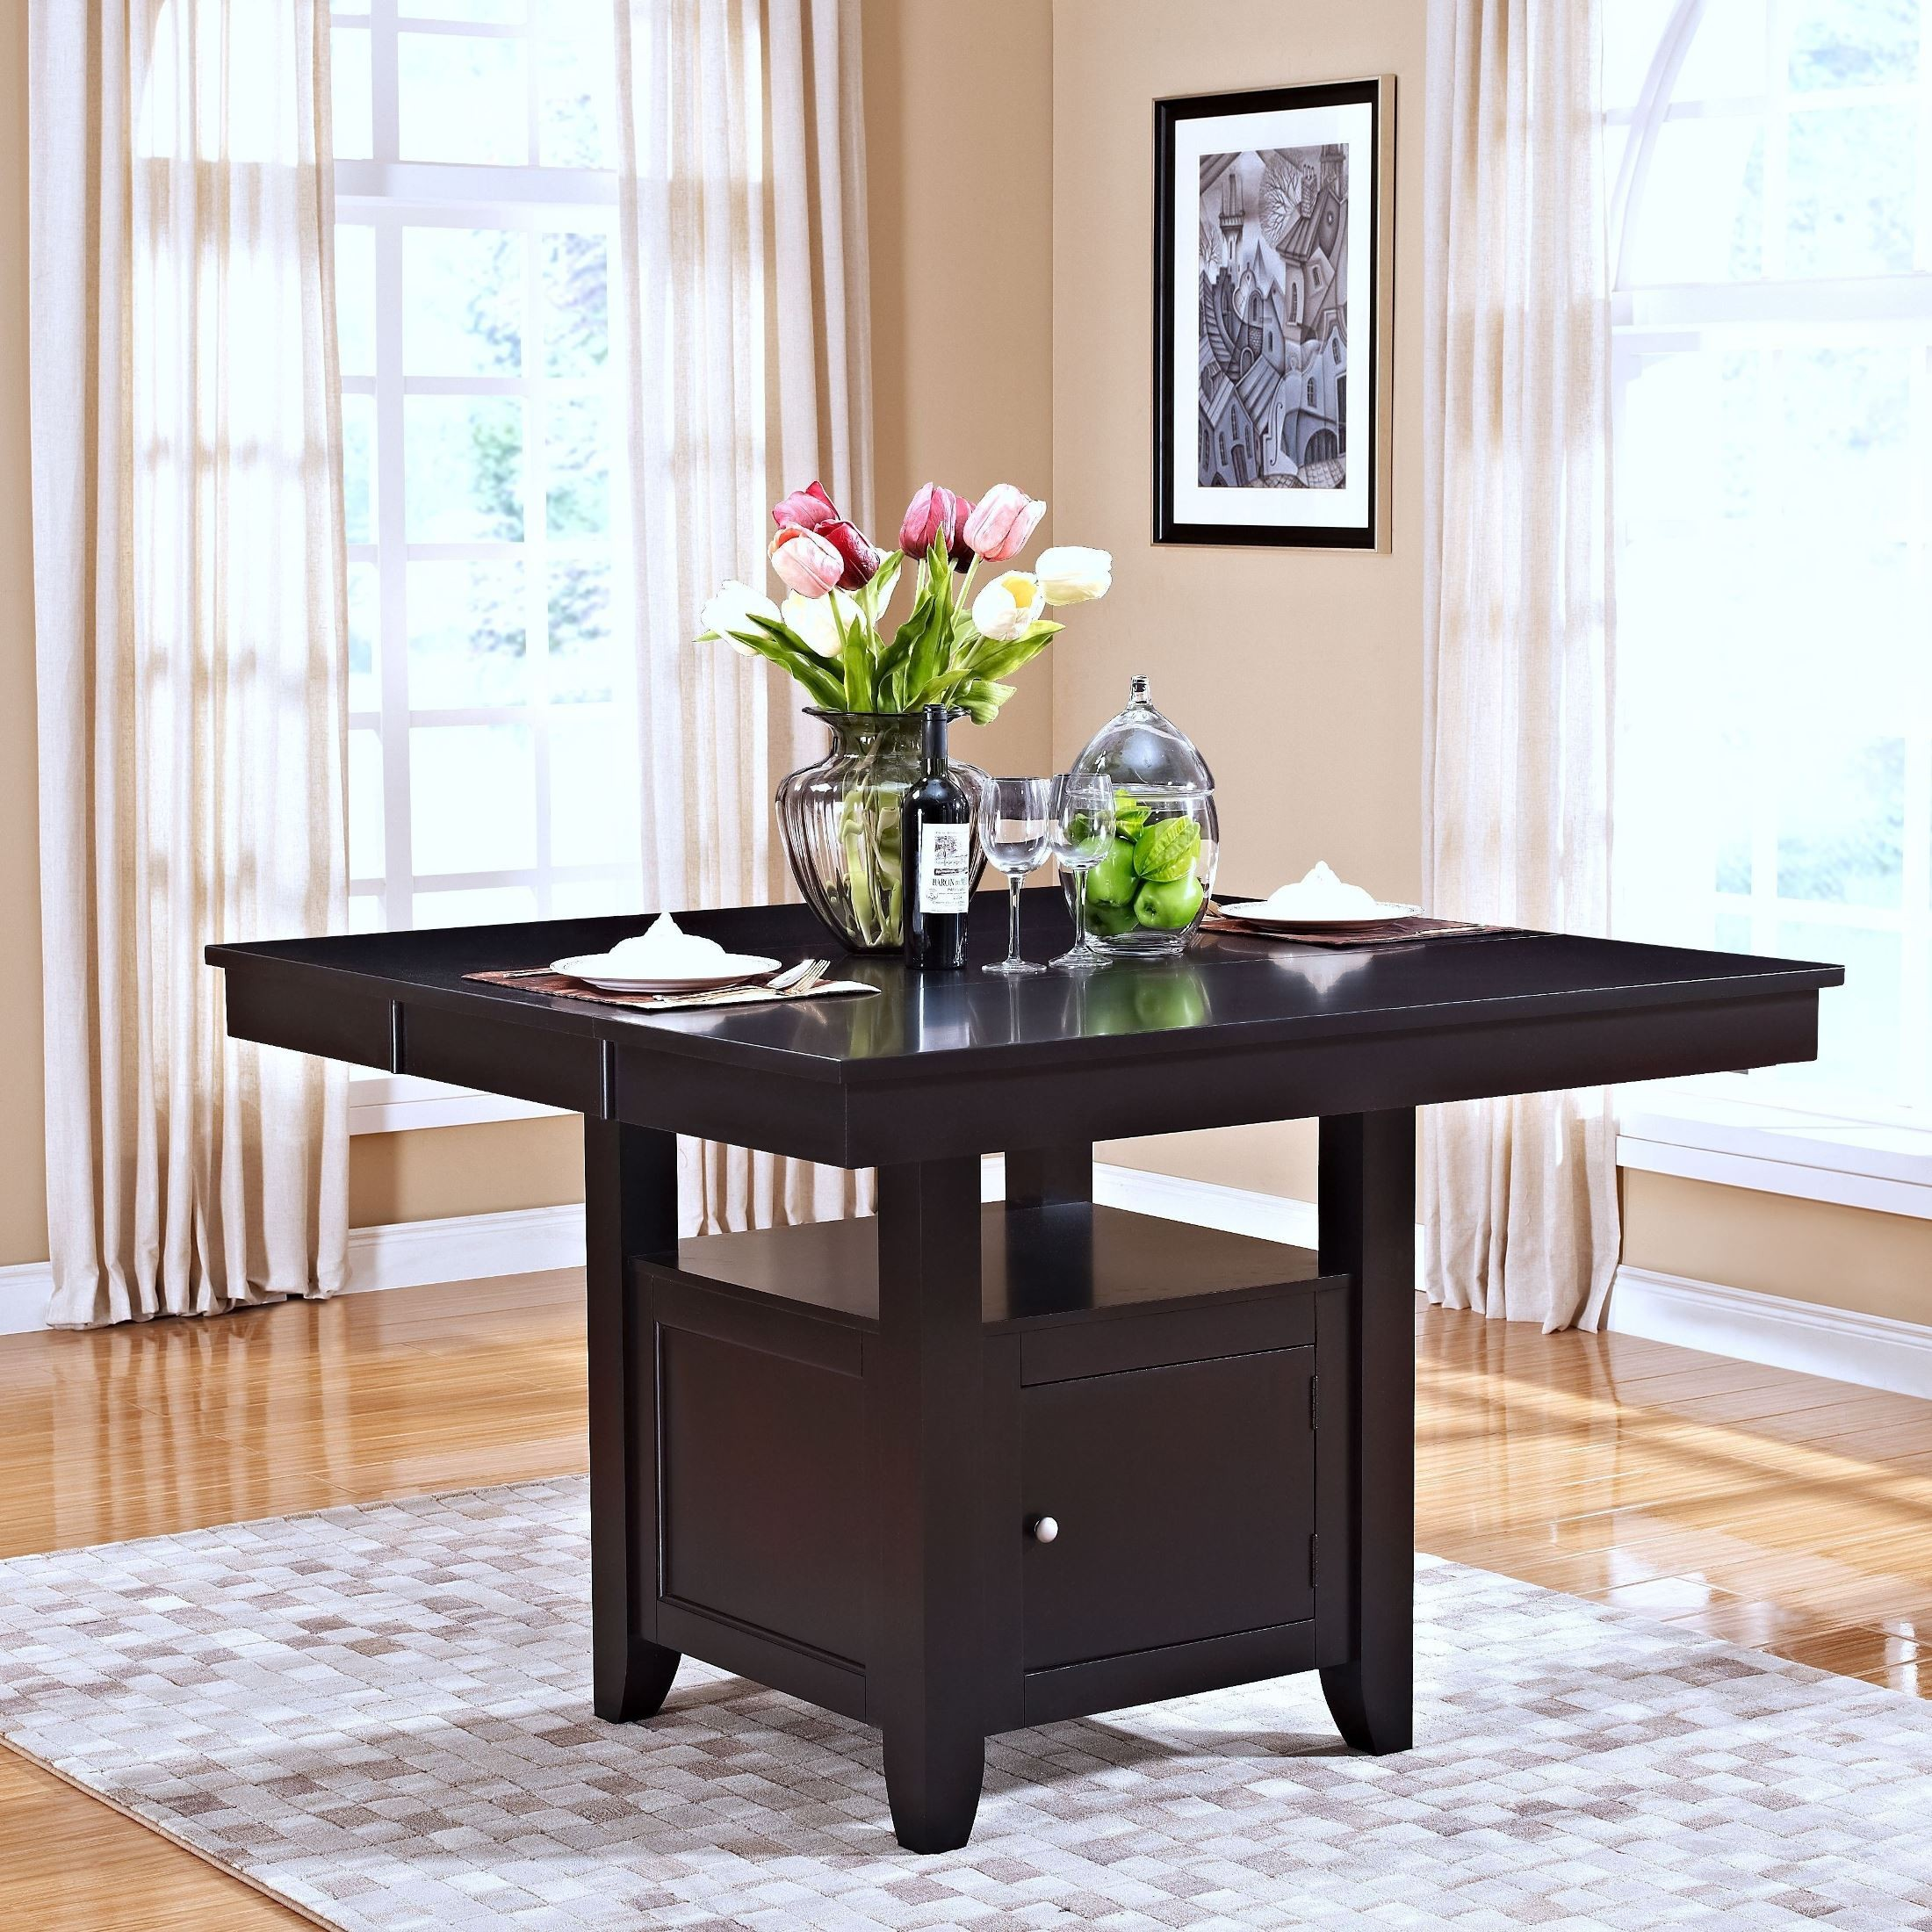 Kaylee Espresso Counter Height Storage Dining Room Set  : 40 10211 from colemanfurniture.com size 2200 x 2200 jpeg 976kB